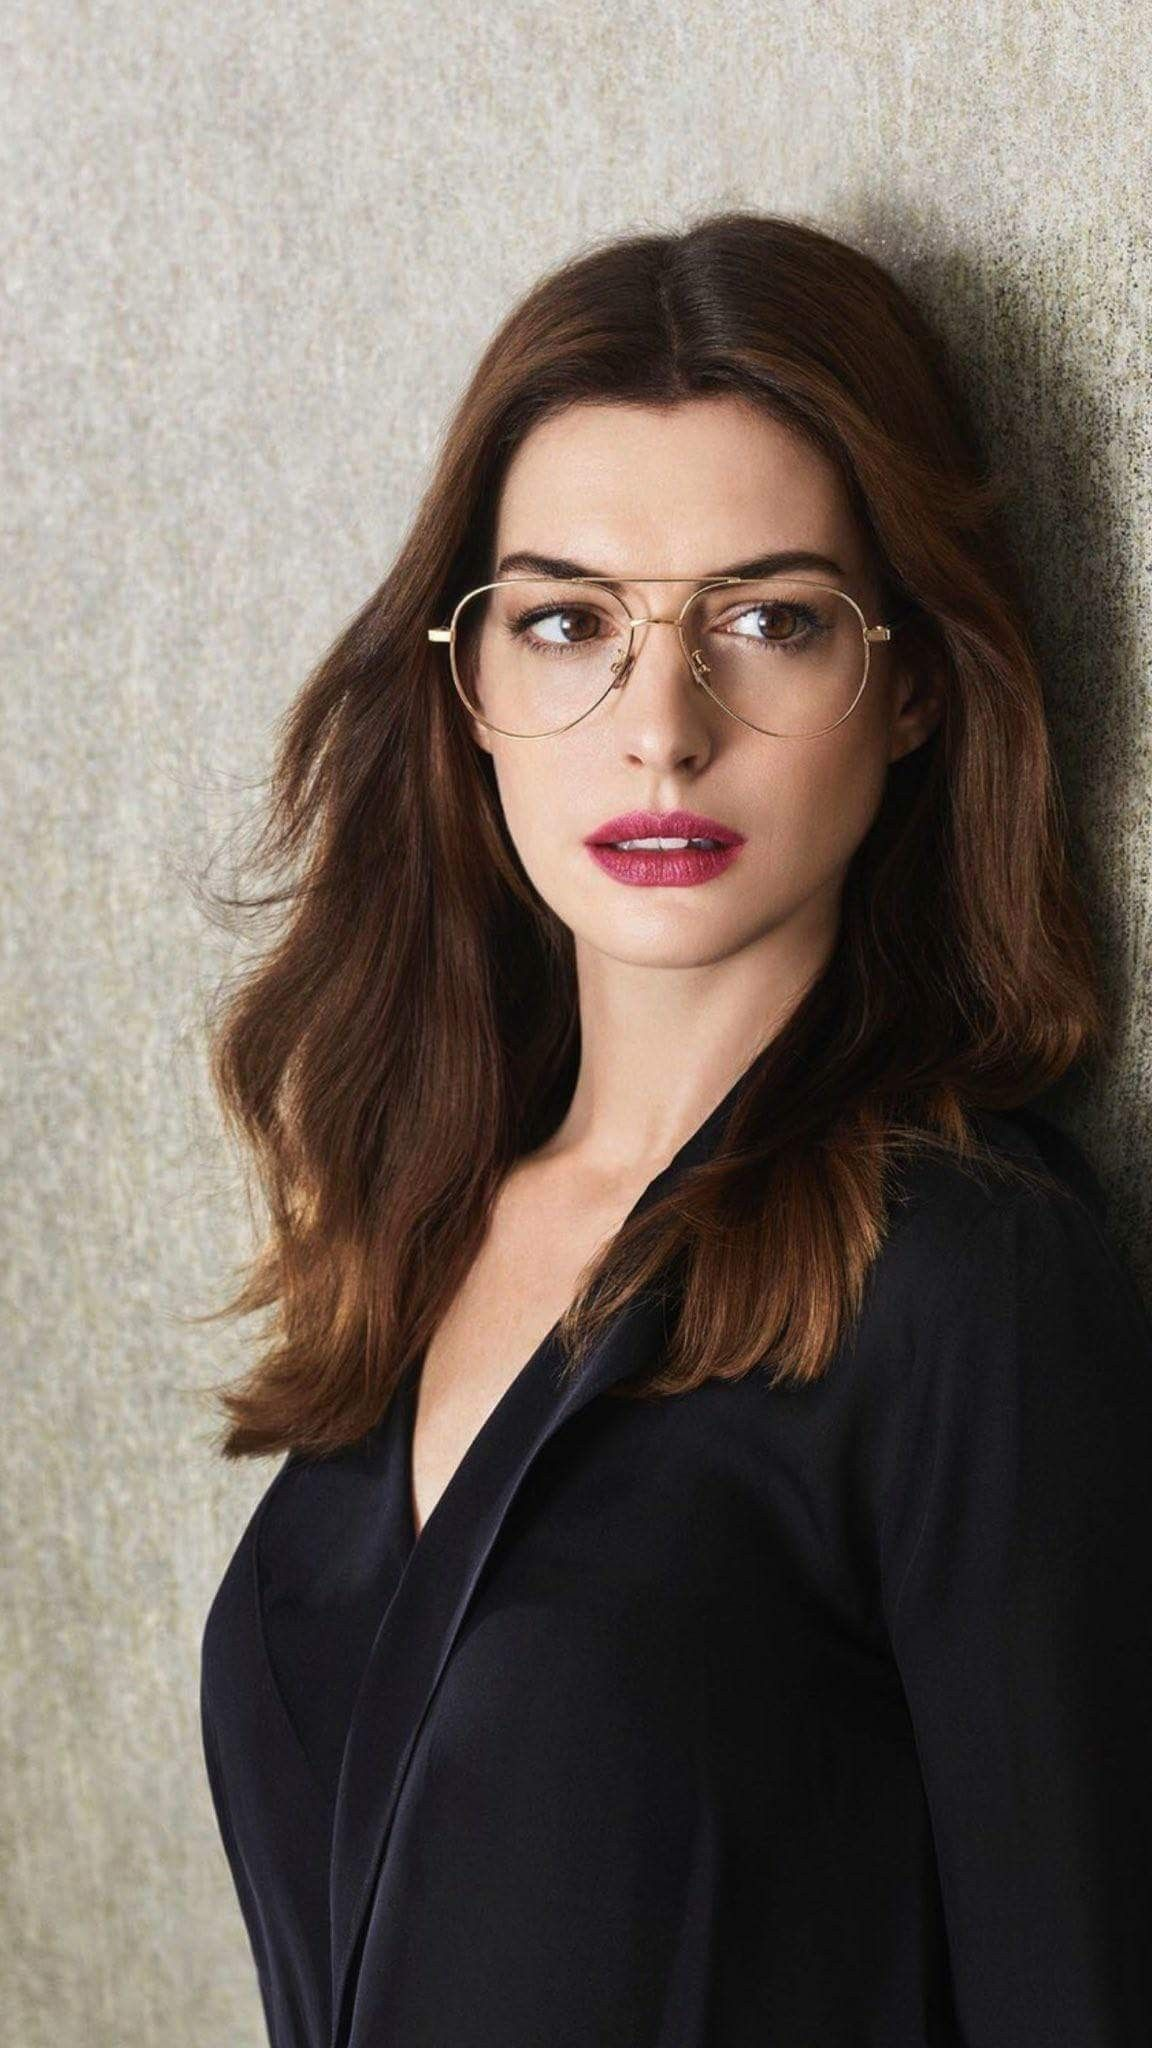 anne hathaway | anime grile | pinterest | anne hathaway, actresses